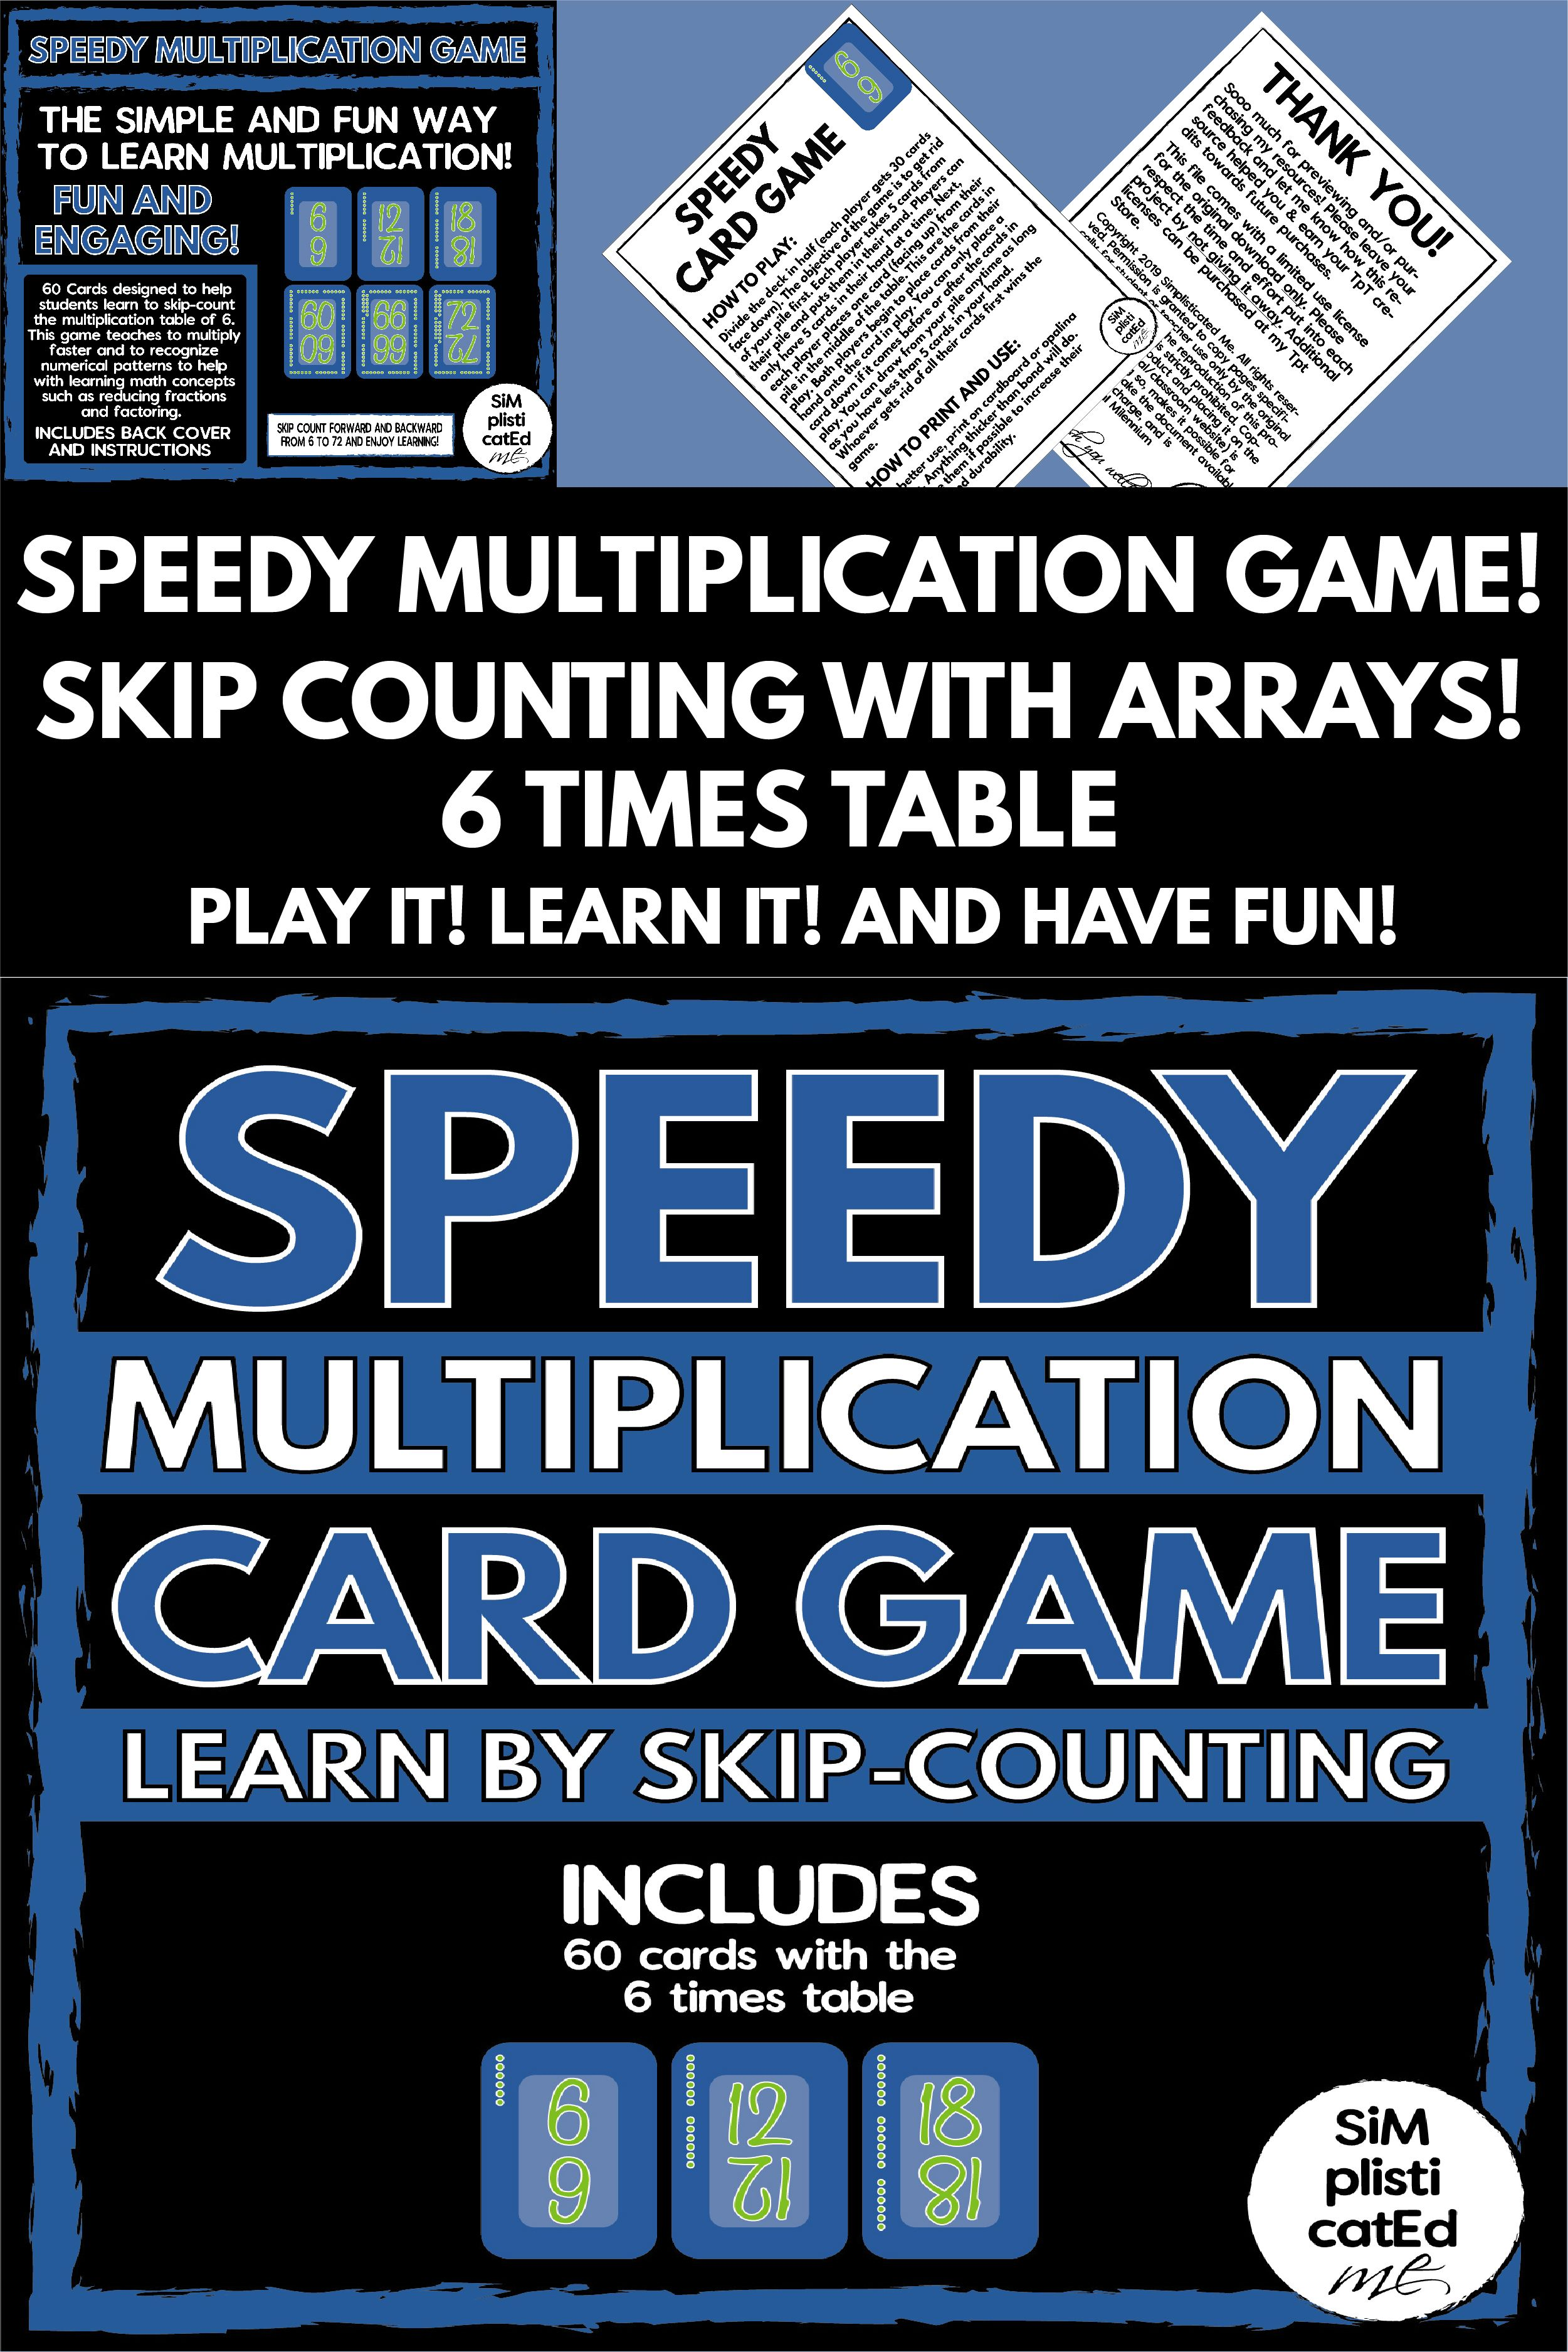 Speedy The Multiplication Card Game 6 Times Table Skip Counting Arrays Multiplication Cards Teaching Multiplication Card Games [ 3751 x 2501 Pixel ]